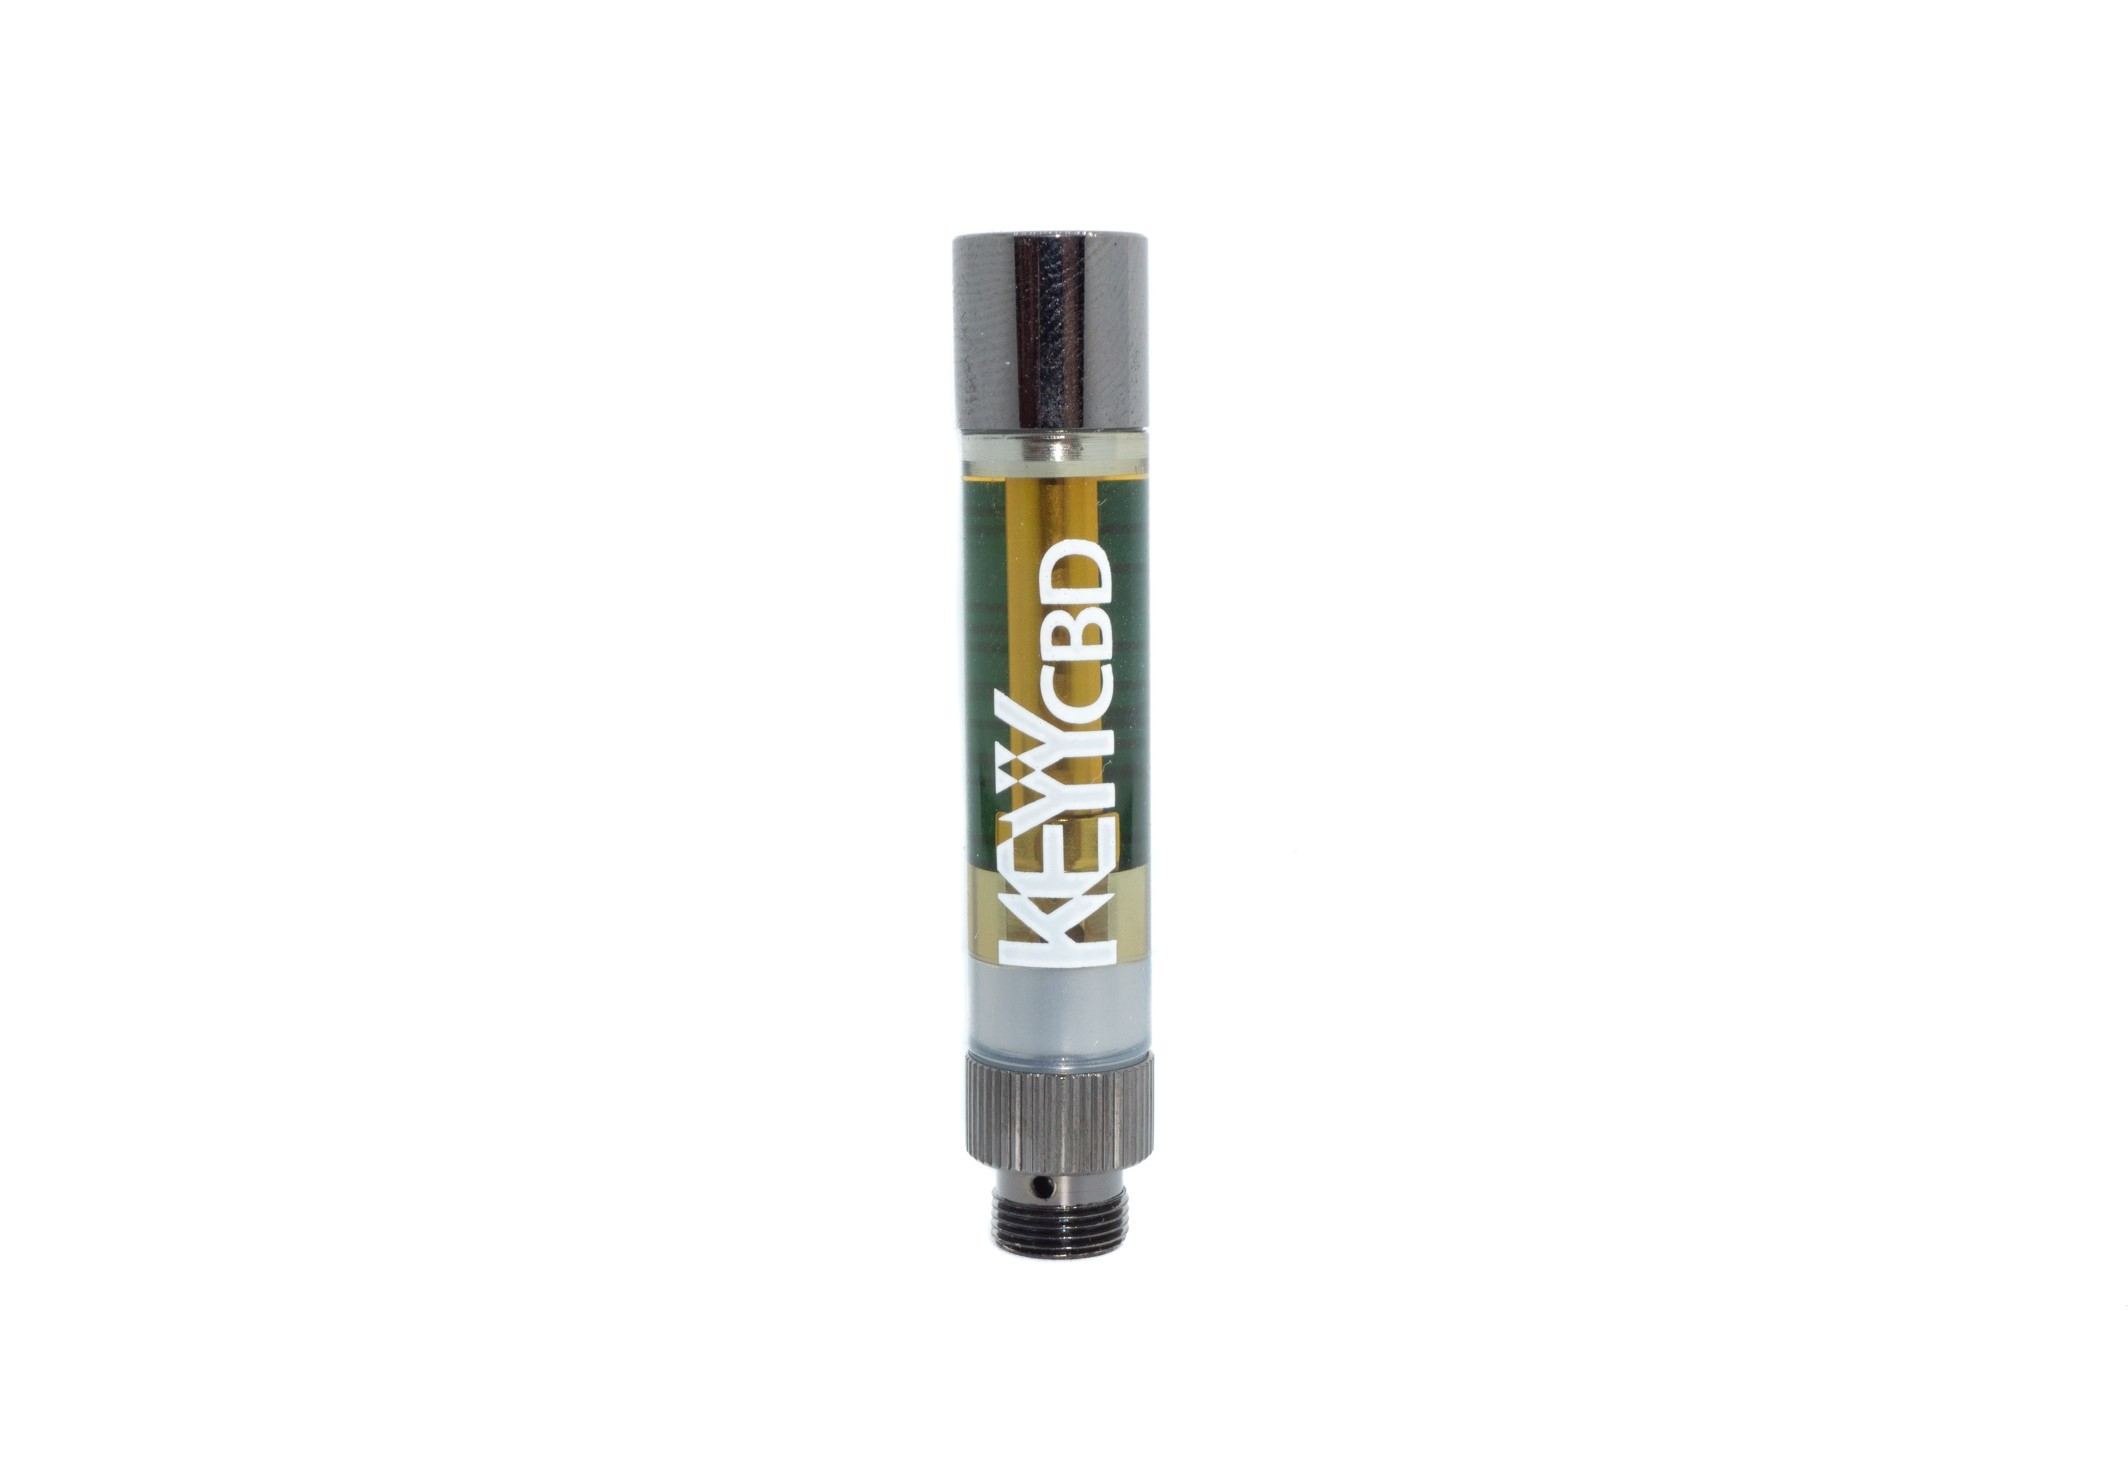 Harlequin (1:1) CBD Replacement Cartridge by Keyy